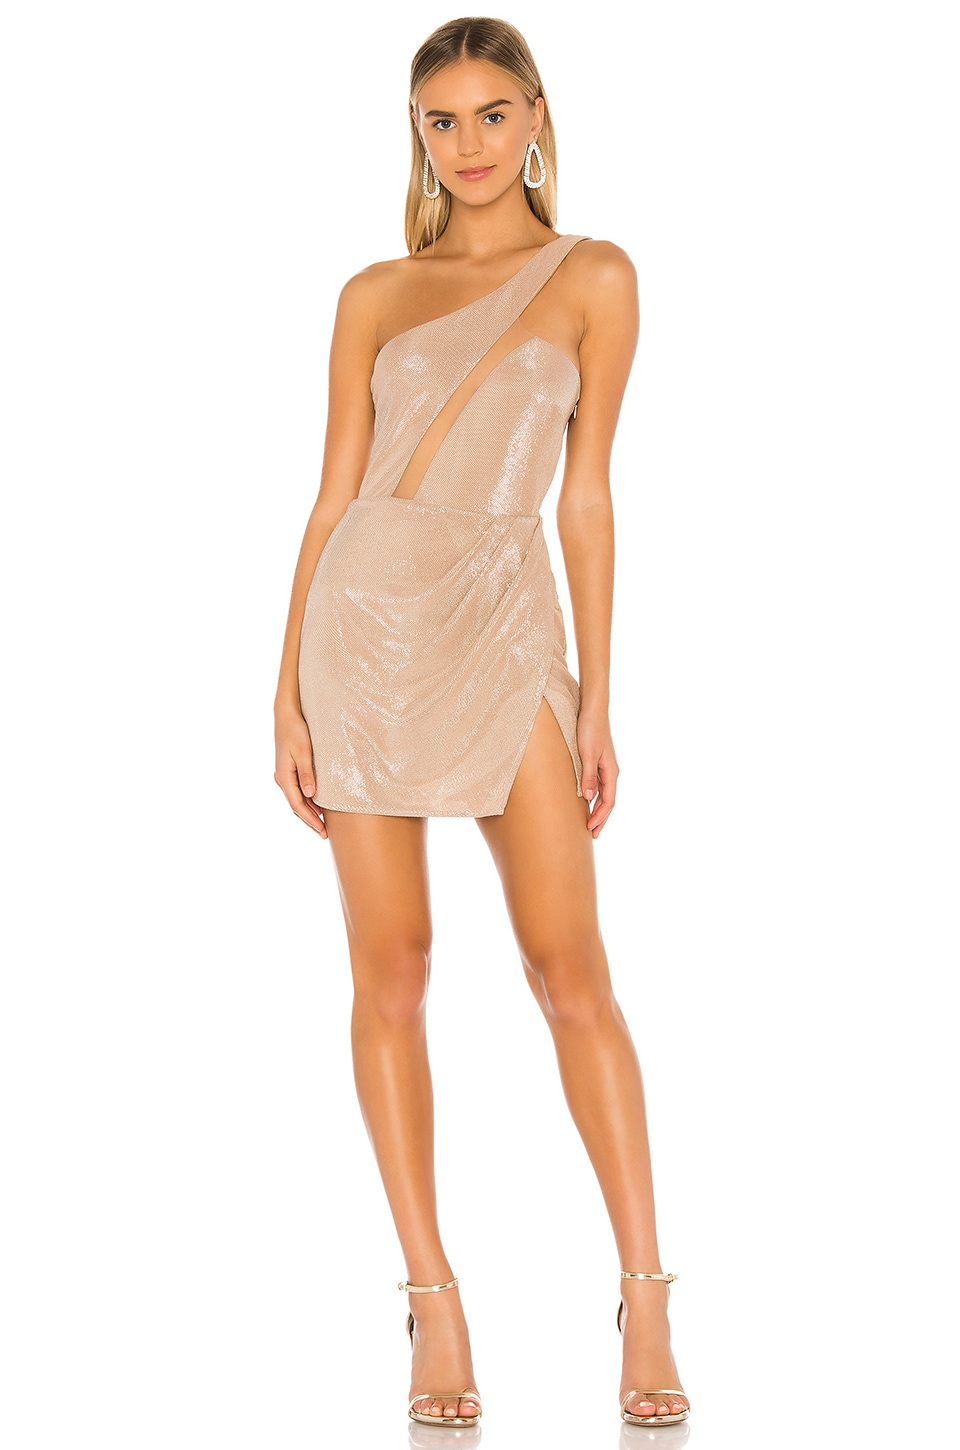 Michael Costello x REVOLVE Linden Mini Dress in Light Pink